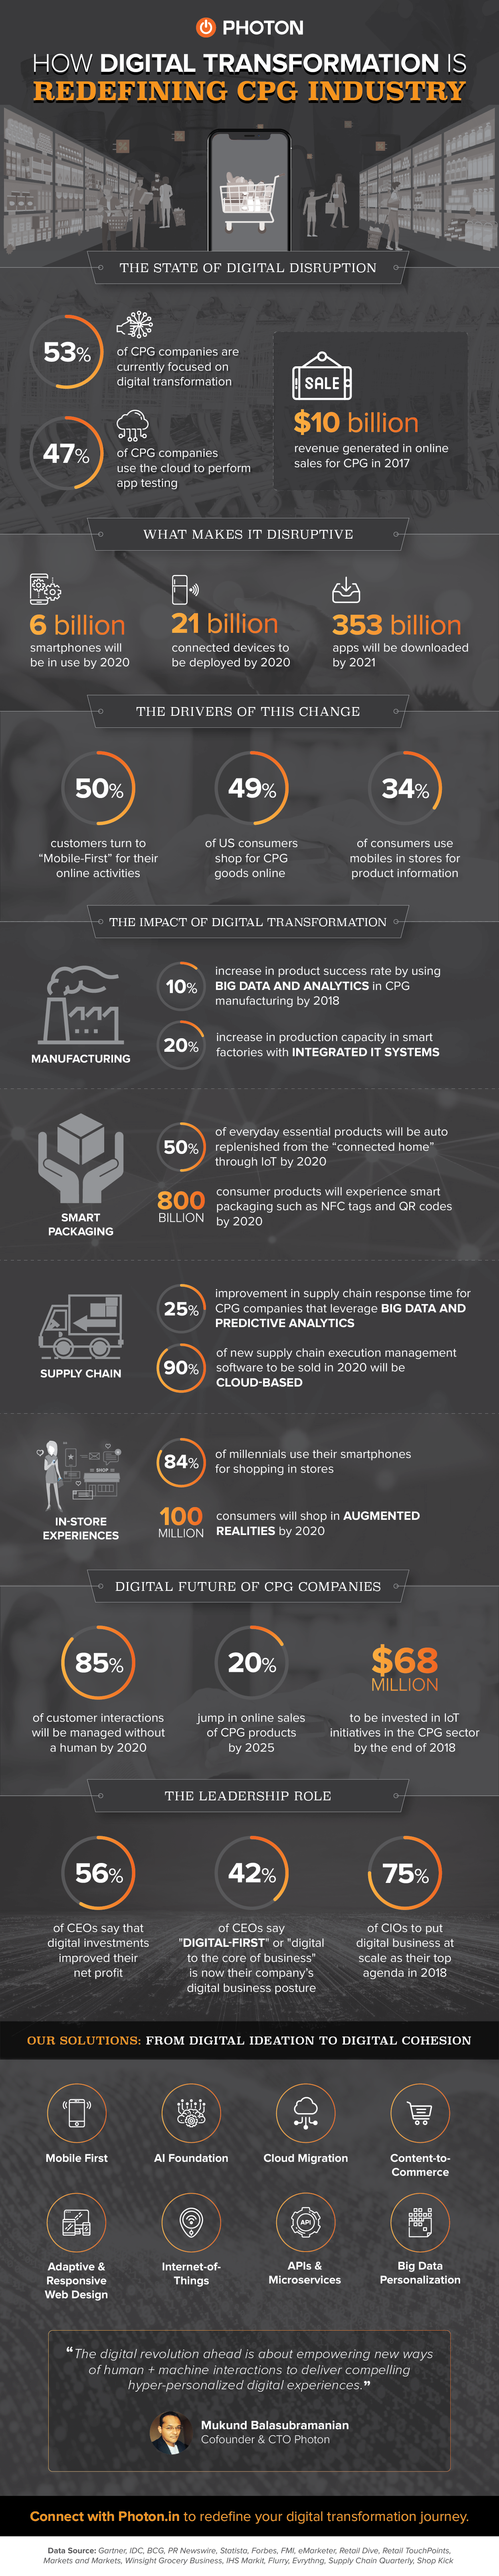 Infographic-Digital Transformation in CPG Industry-PHOTON